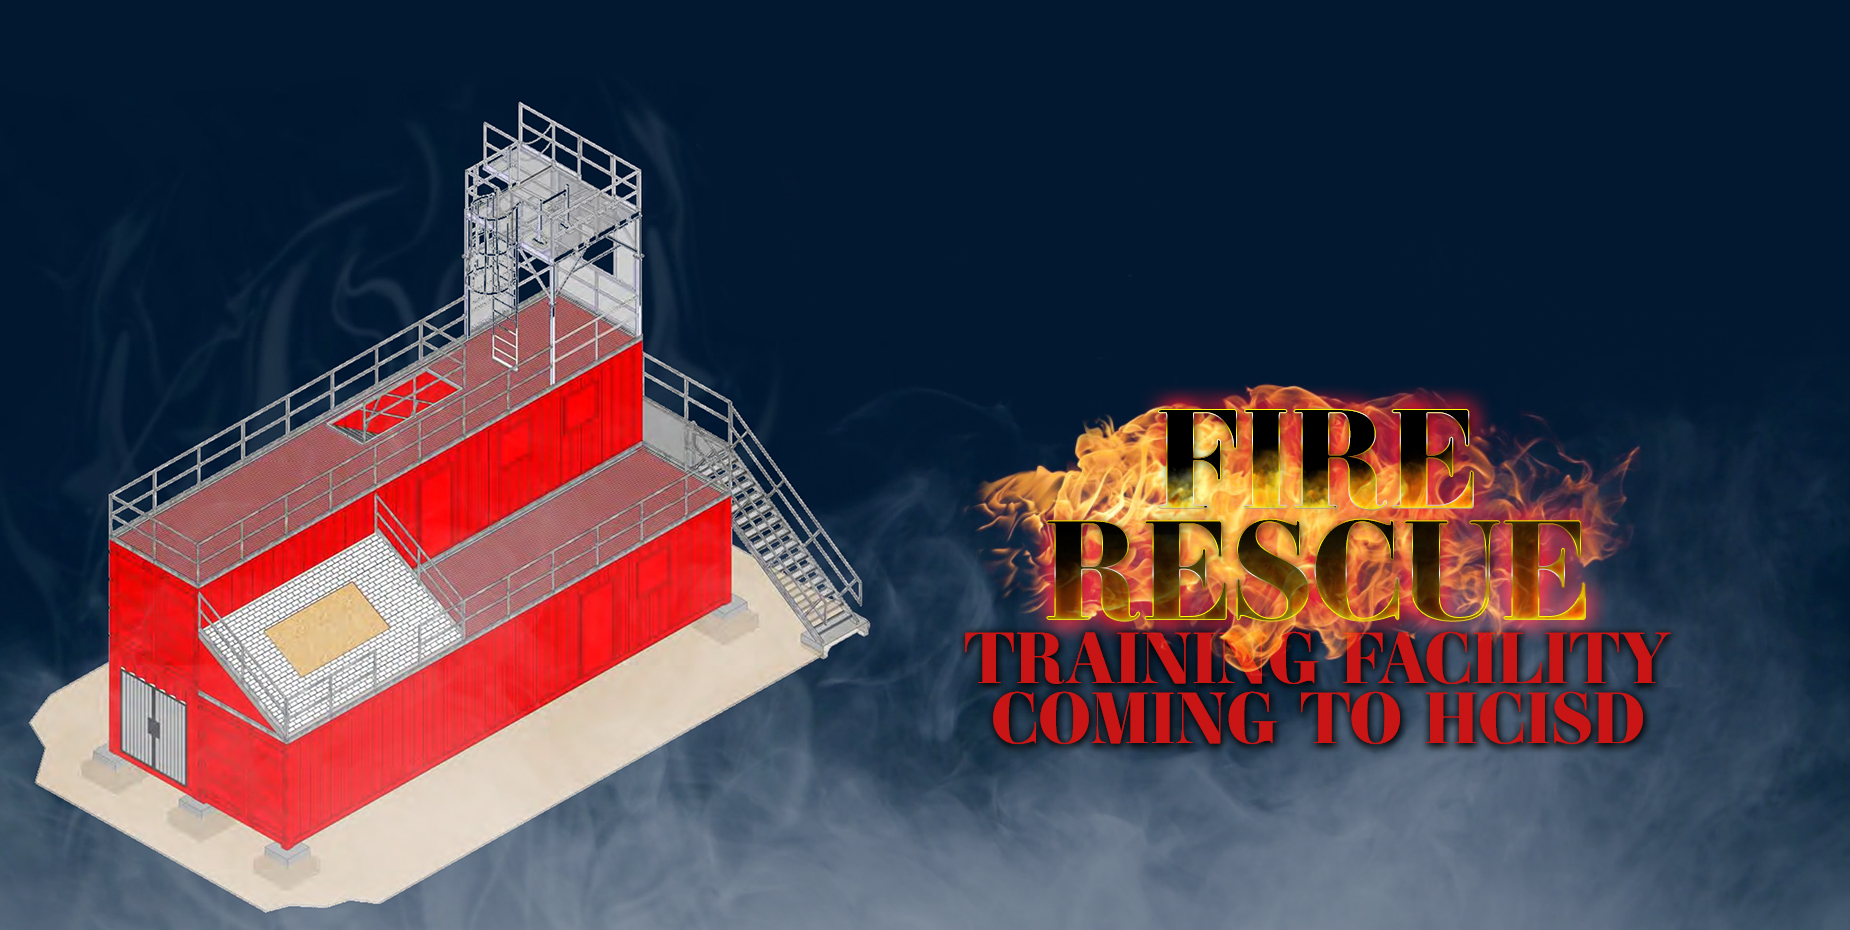 Fire rescue training facility coming to HCISD